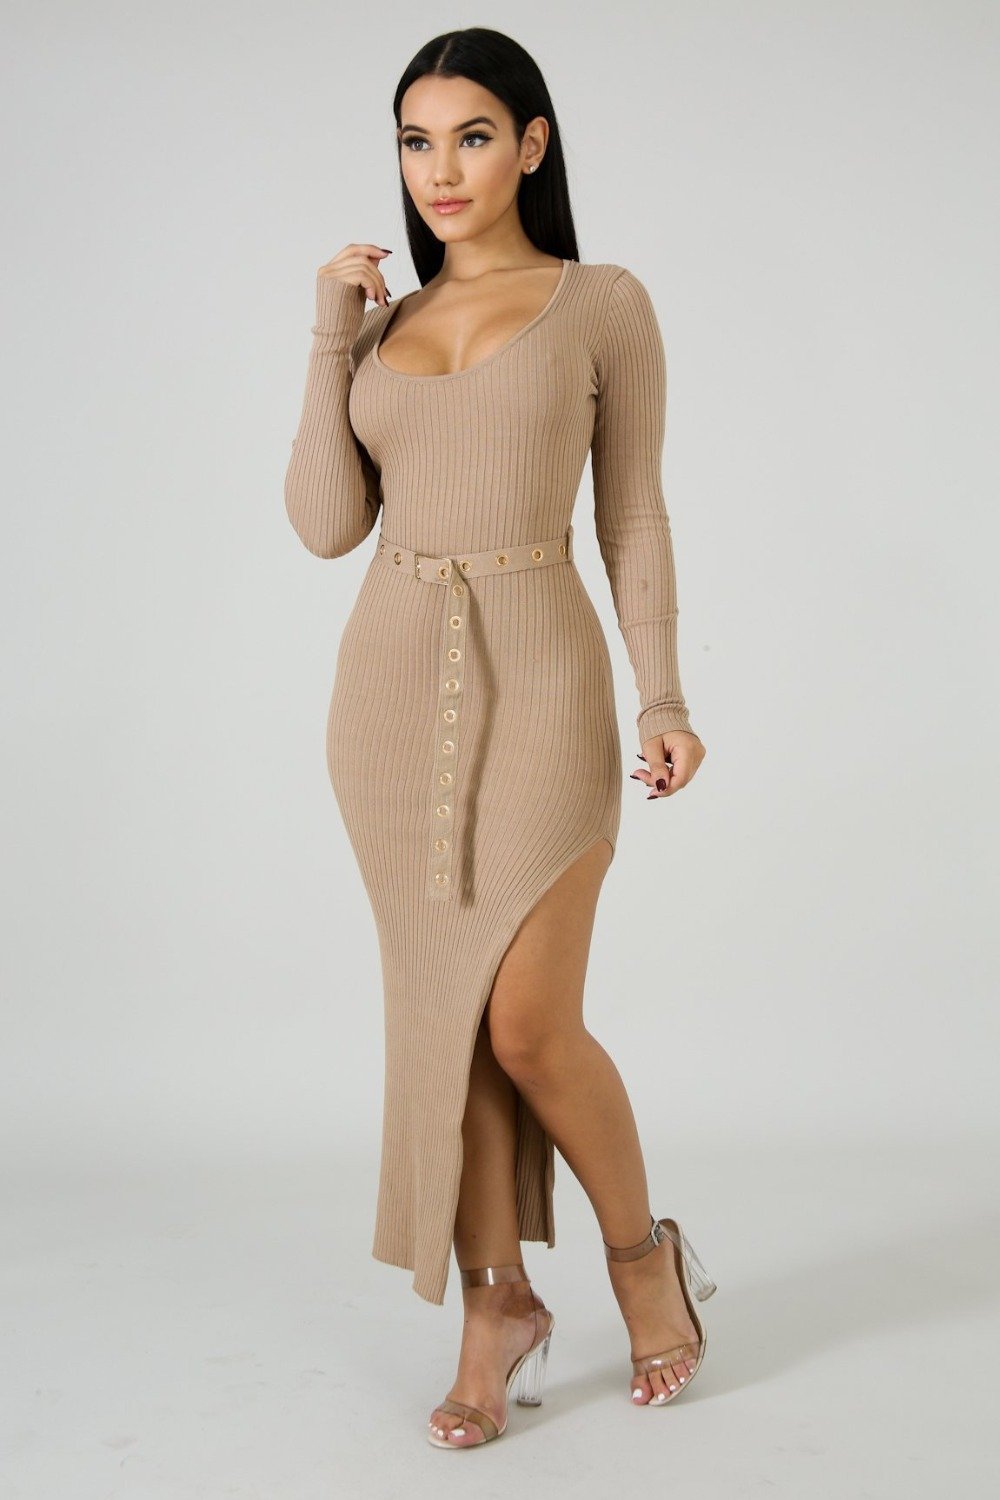 452daea53f13 Solid Knitted Rib Maxi Dress Women Casual Cotton Long Sleeve O Neck Sexy  High Split Knit